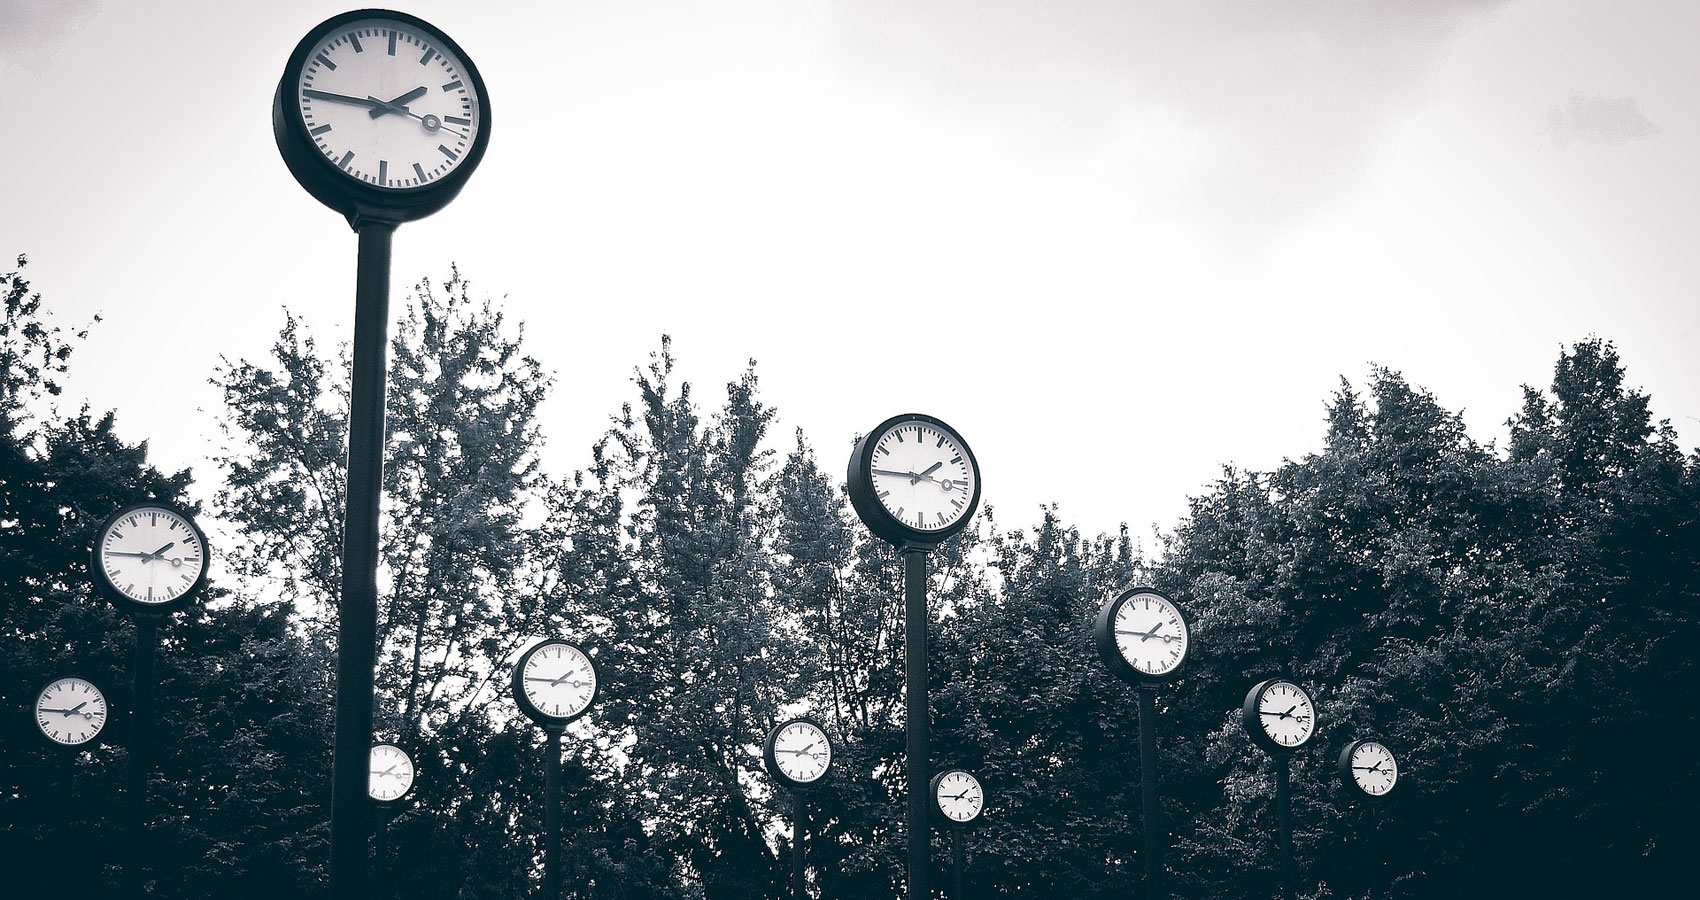 The Hand of Time, poetry written by Eden S. Trinidad at Spillwords.com